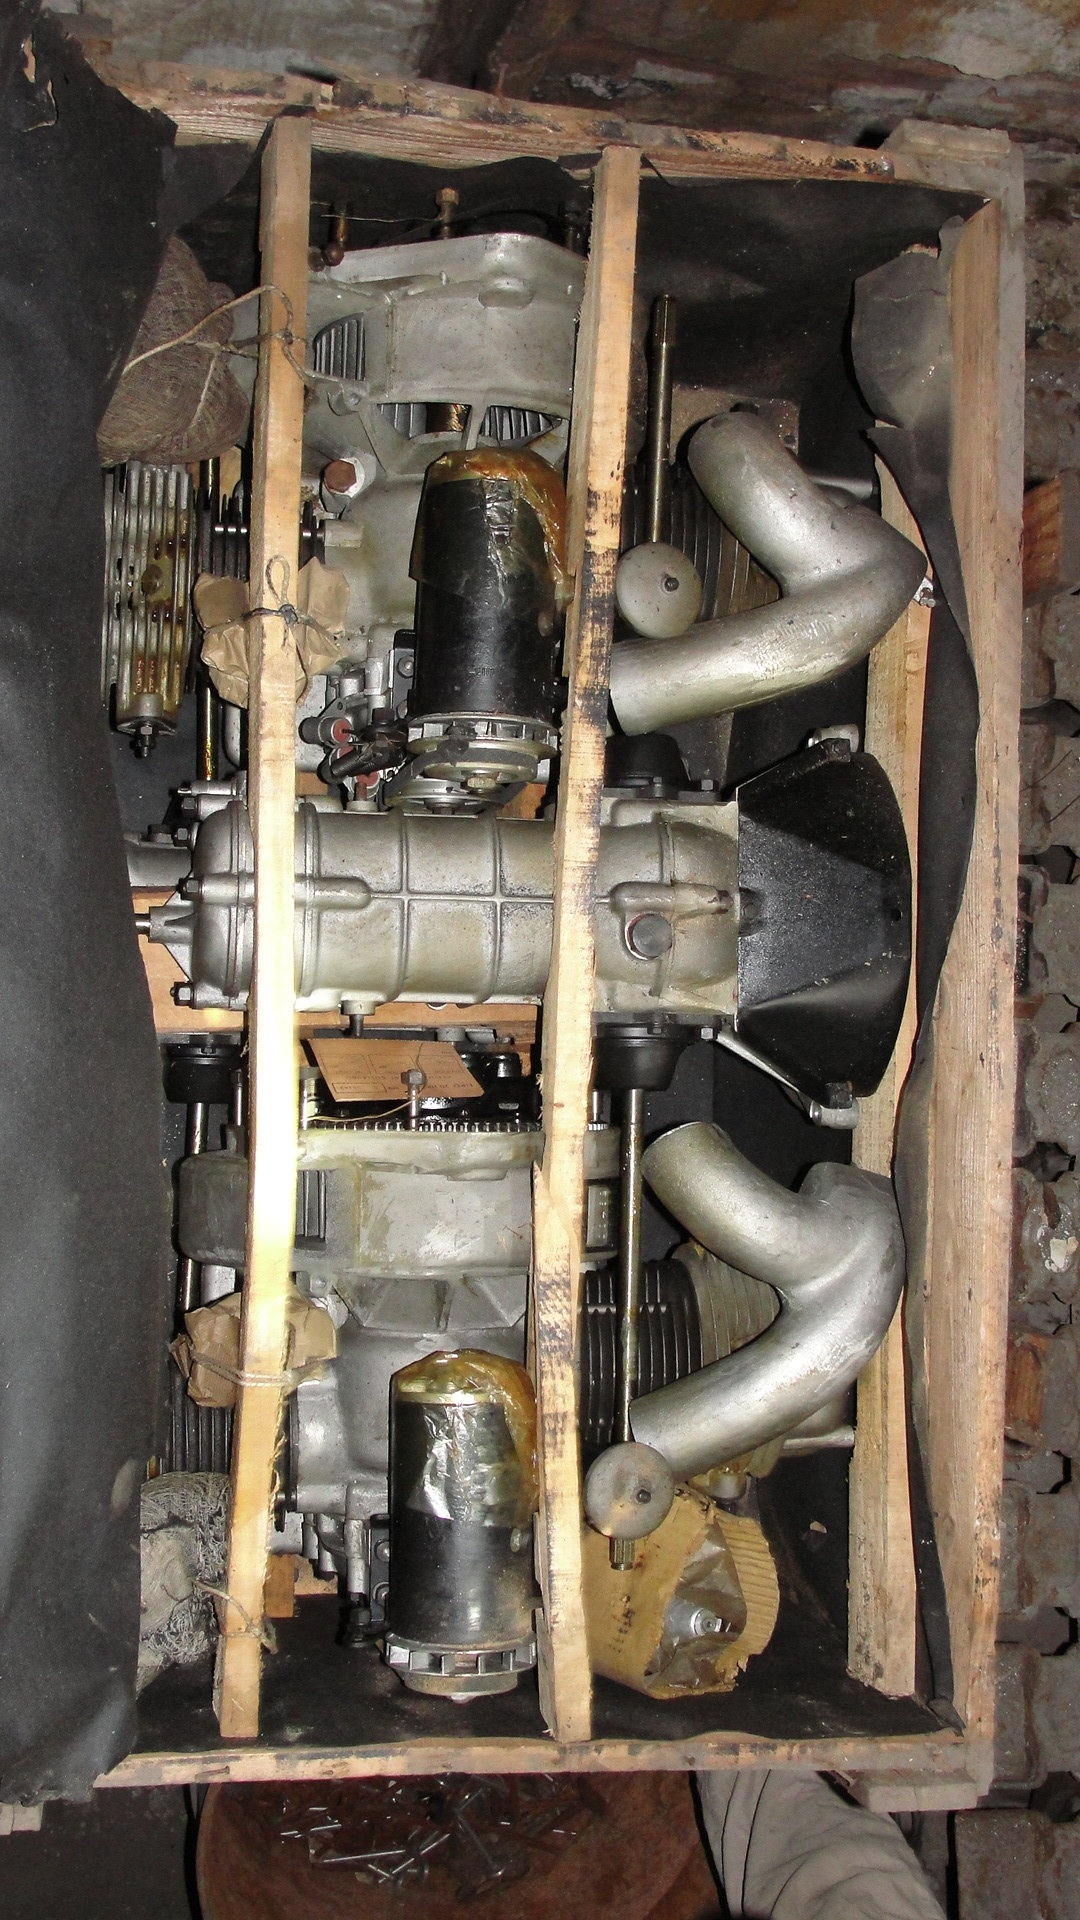 1960 BMW 600 engines and gearboxes NEW IN CRATE For Sale (picture 2 of 6)